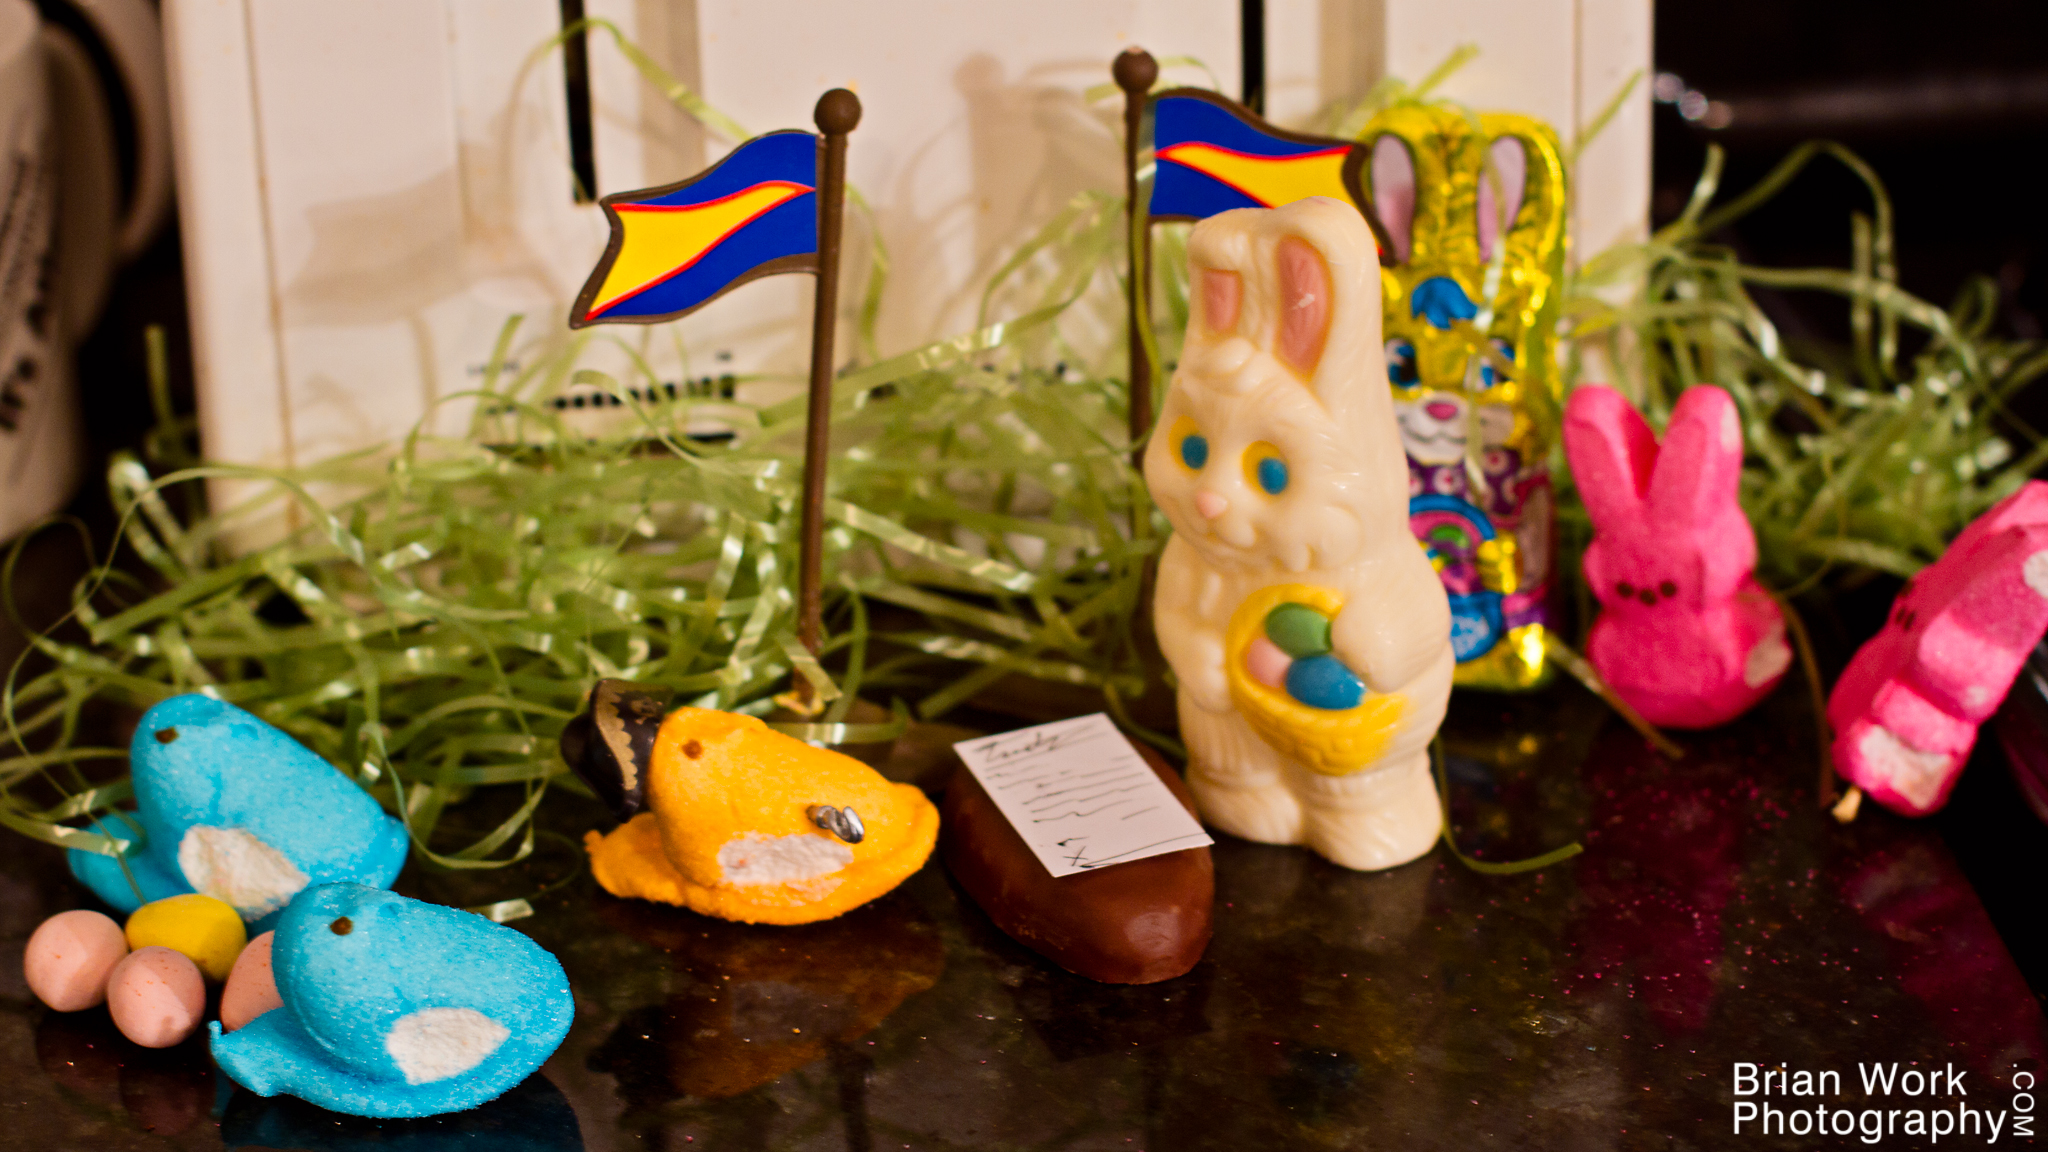 <h5>Their forces decimated, the remaining bunnies had no choice but to surrender. Admiral Peepton gladly accepted, and a treaty was drawn up that gave the Peeps the independence they had so richly earned and deserved.</h5><p>And that, my friends, is why we eat candy on Easter.</p>